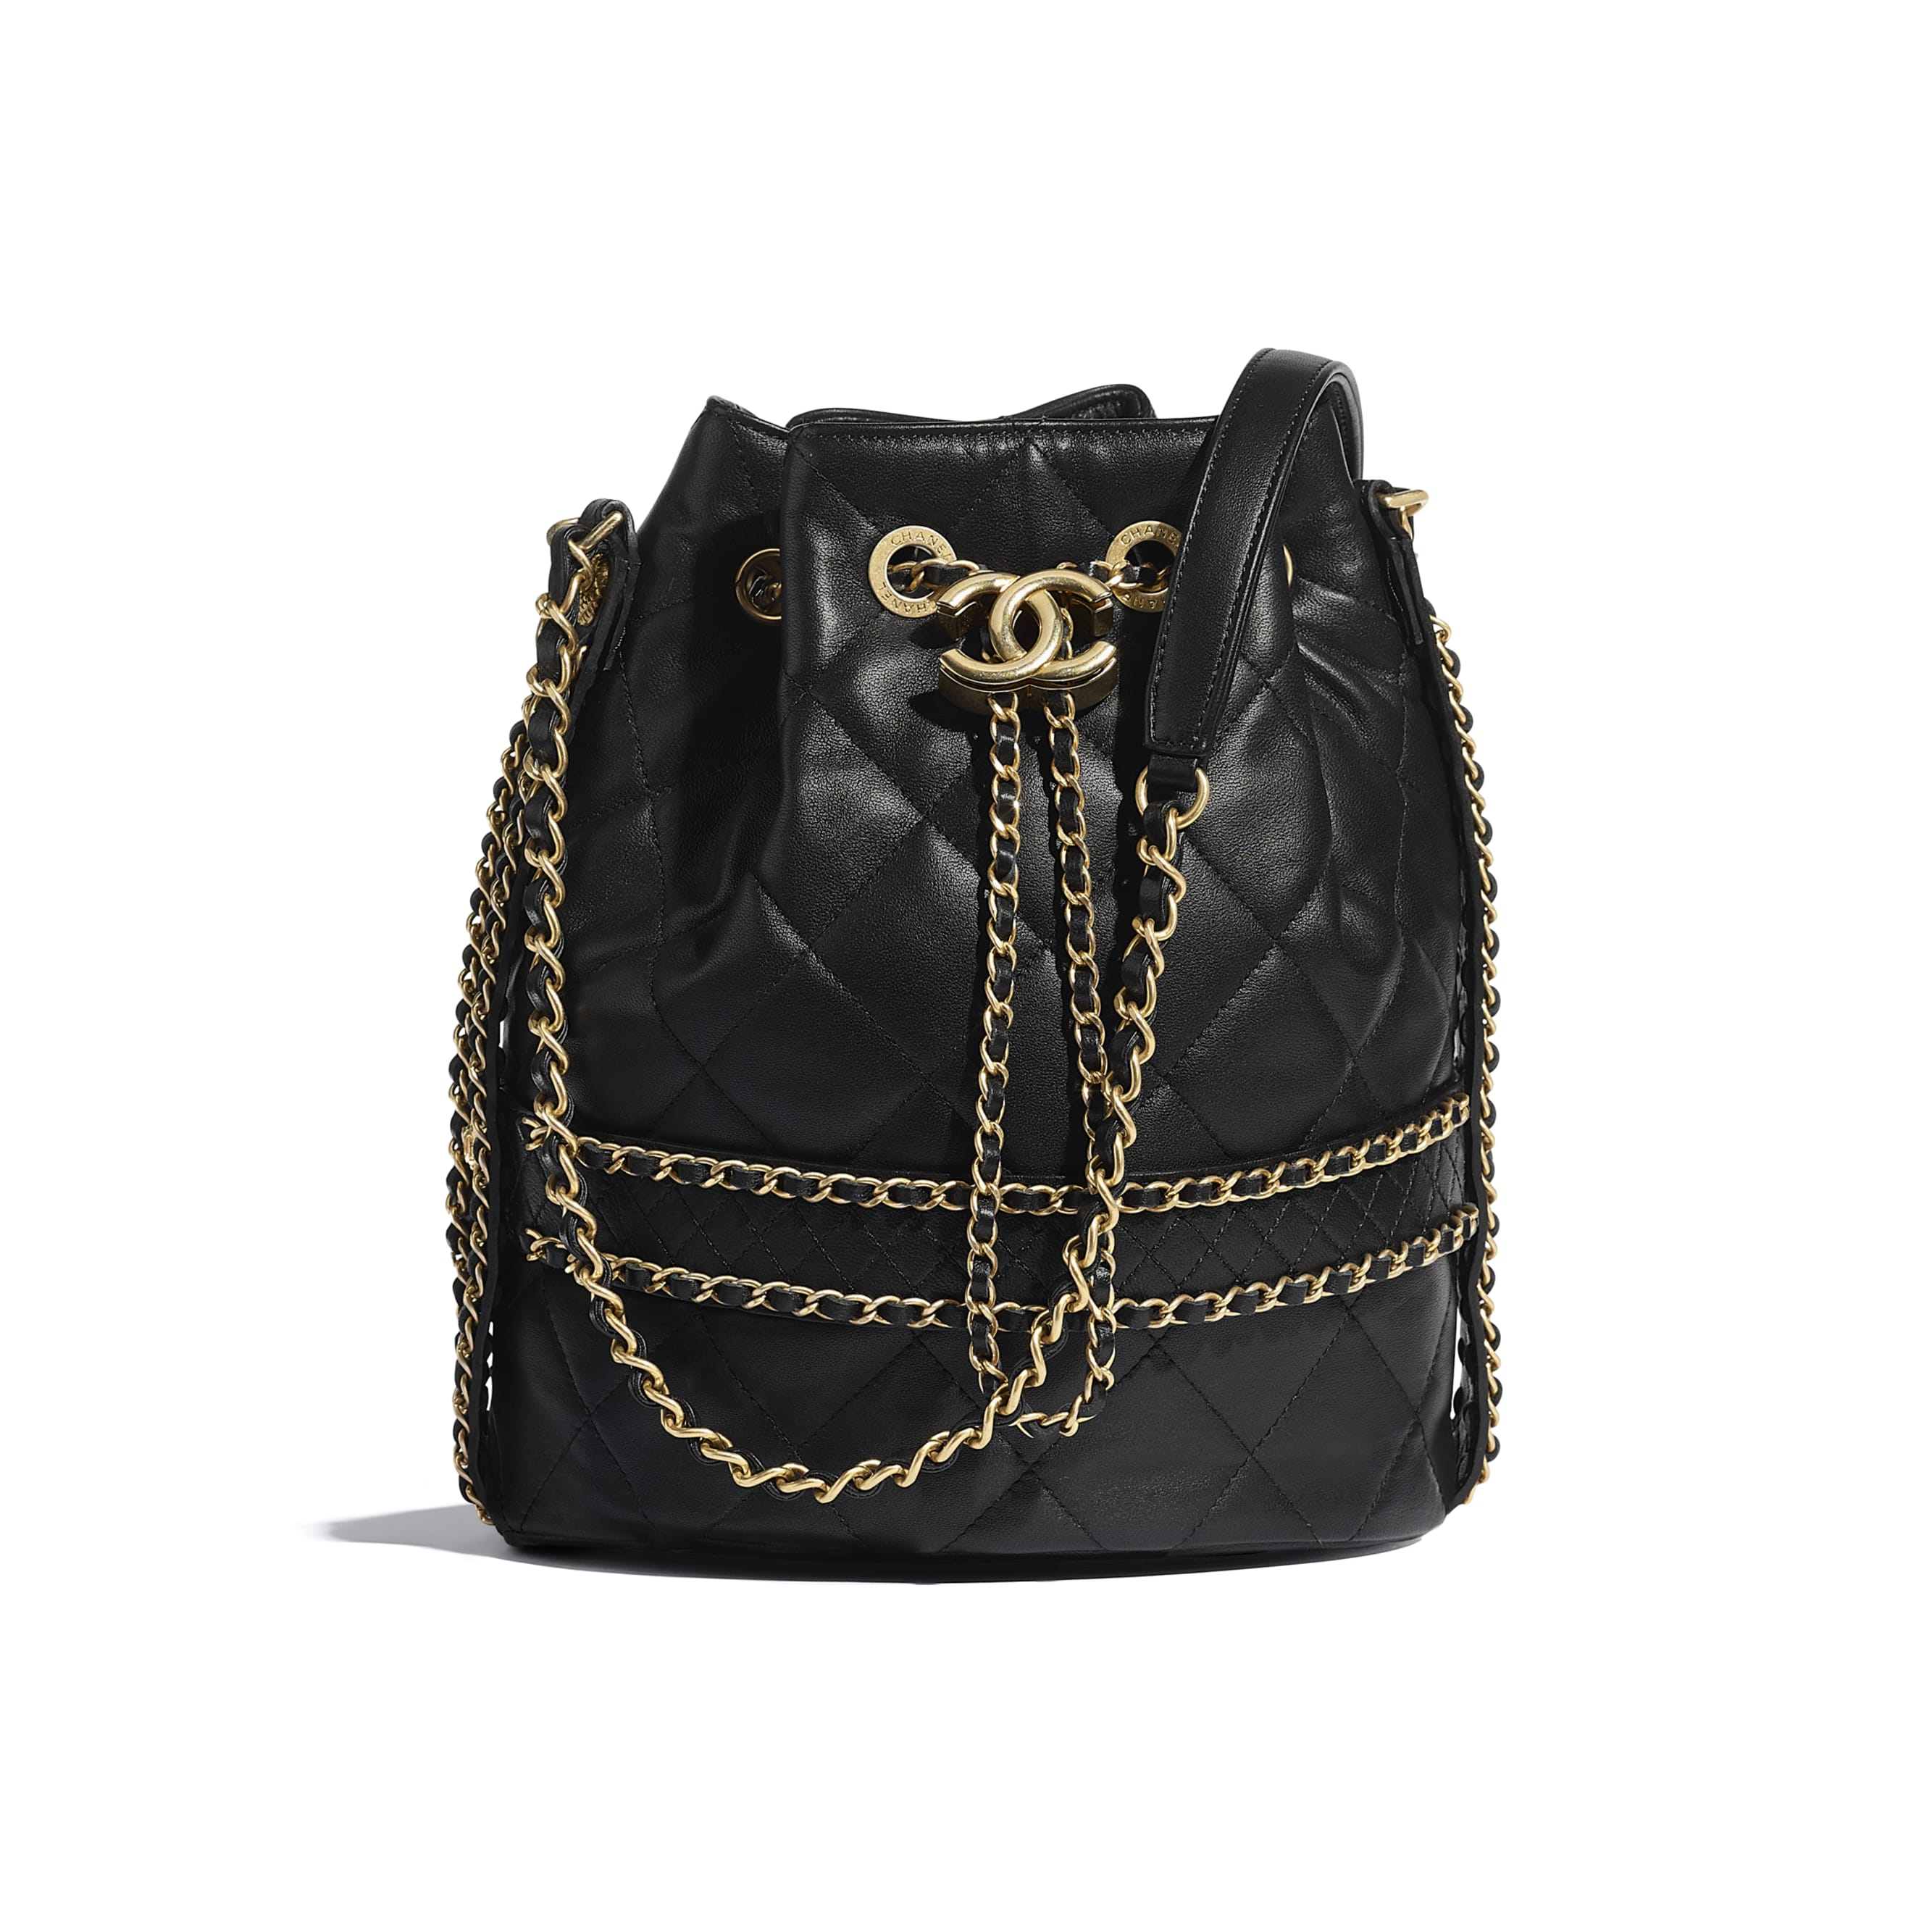 Large Drawstring Bag - Black - Lambskin - CHANEL - Default view - see standard sized version